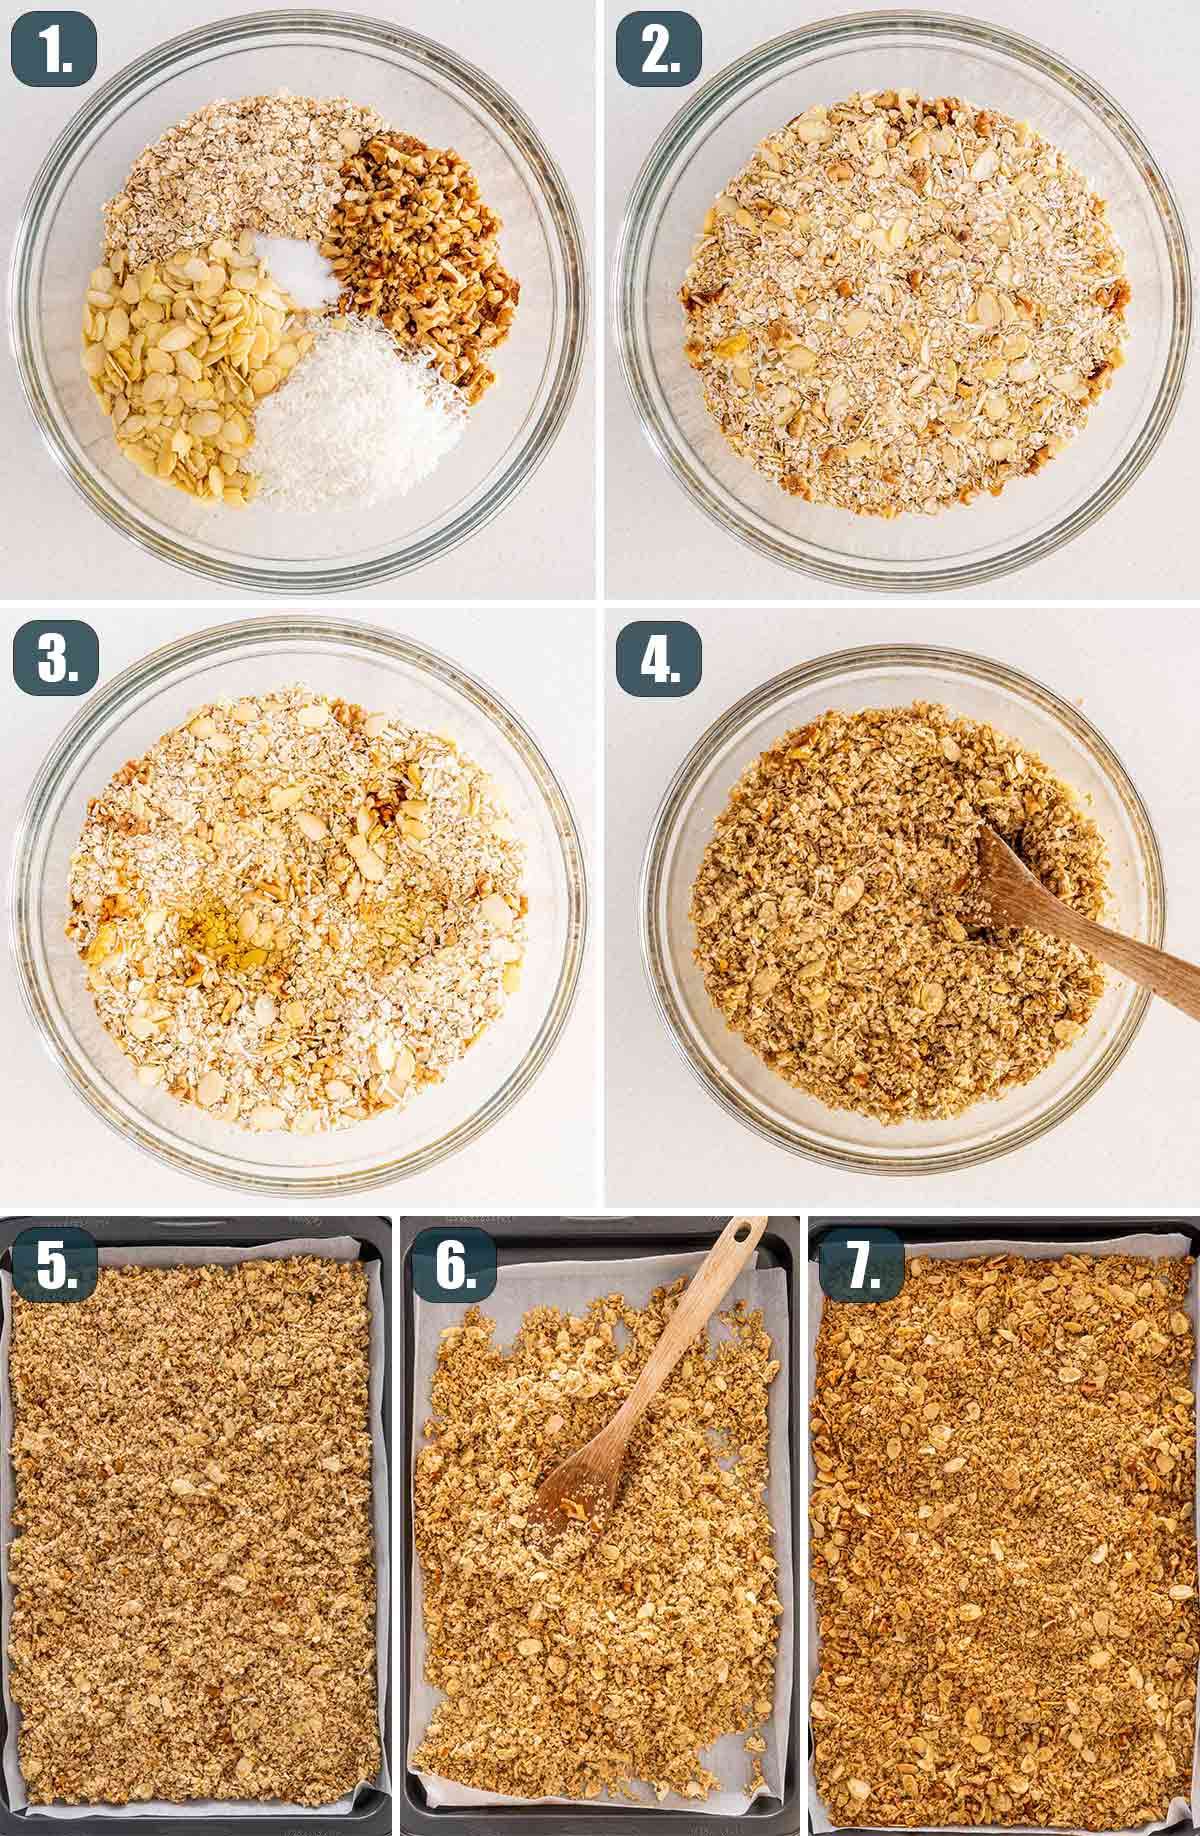 detailed process shots showing how to make granola.